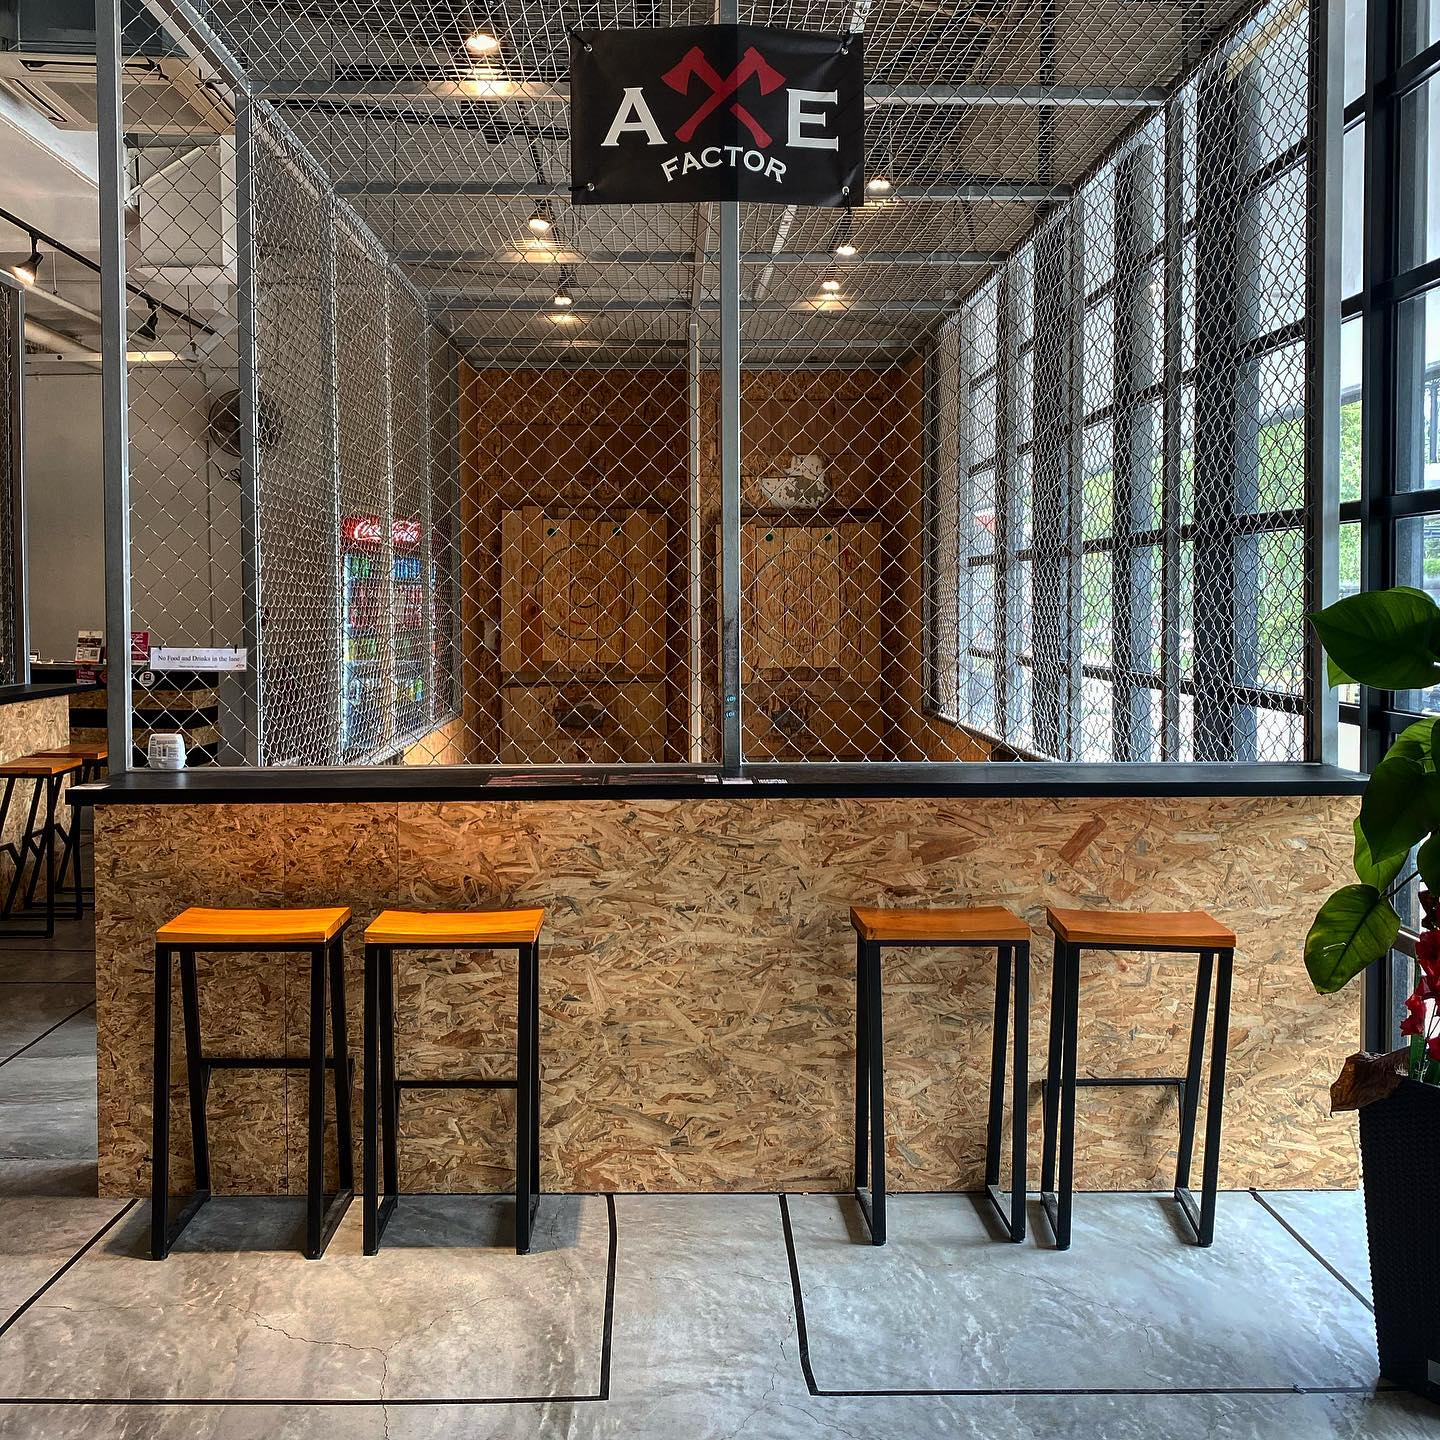 2 Hours Axe Throwing for 1 pax + 1 x $3 Drink Voucher